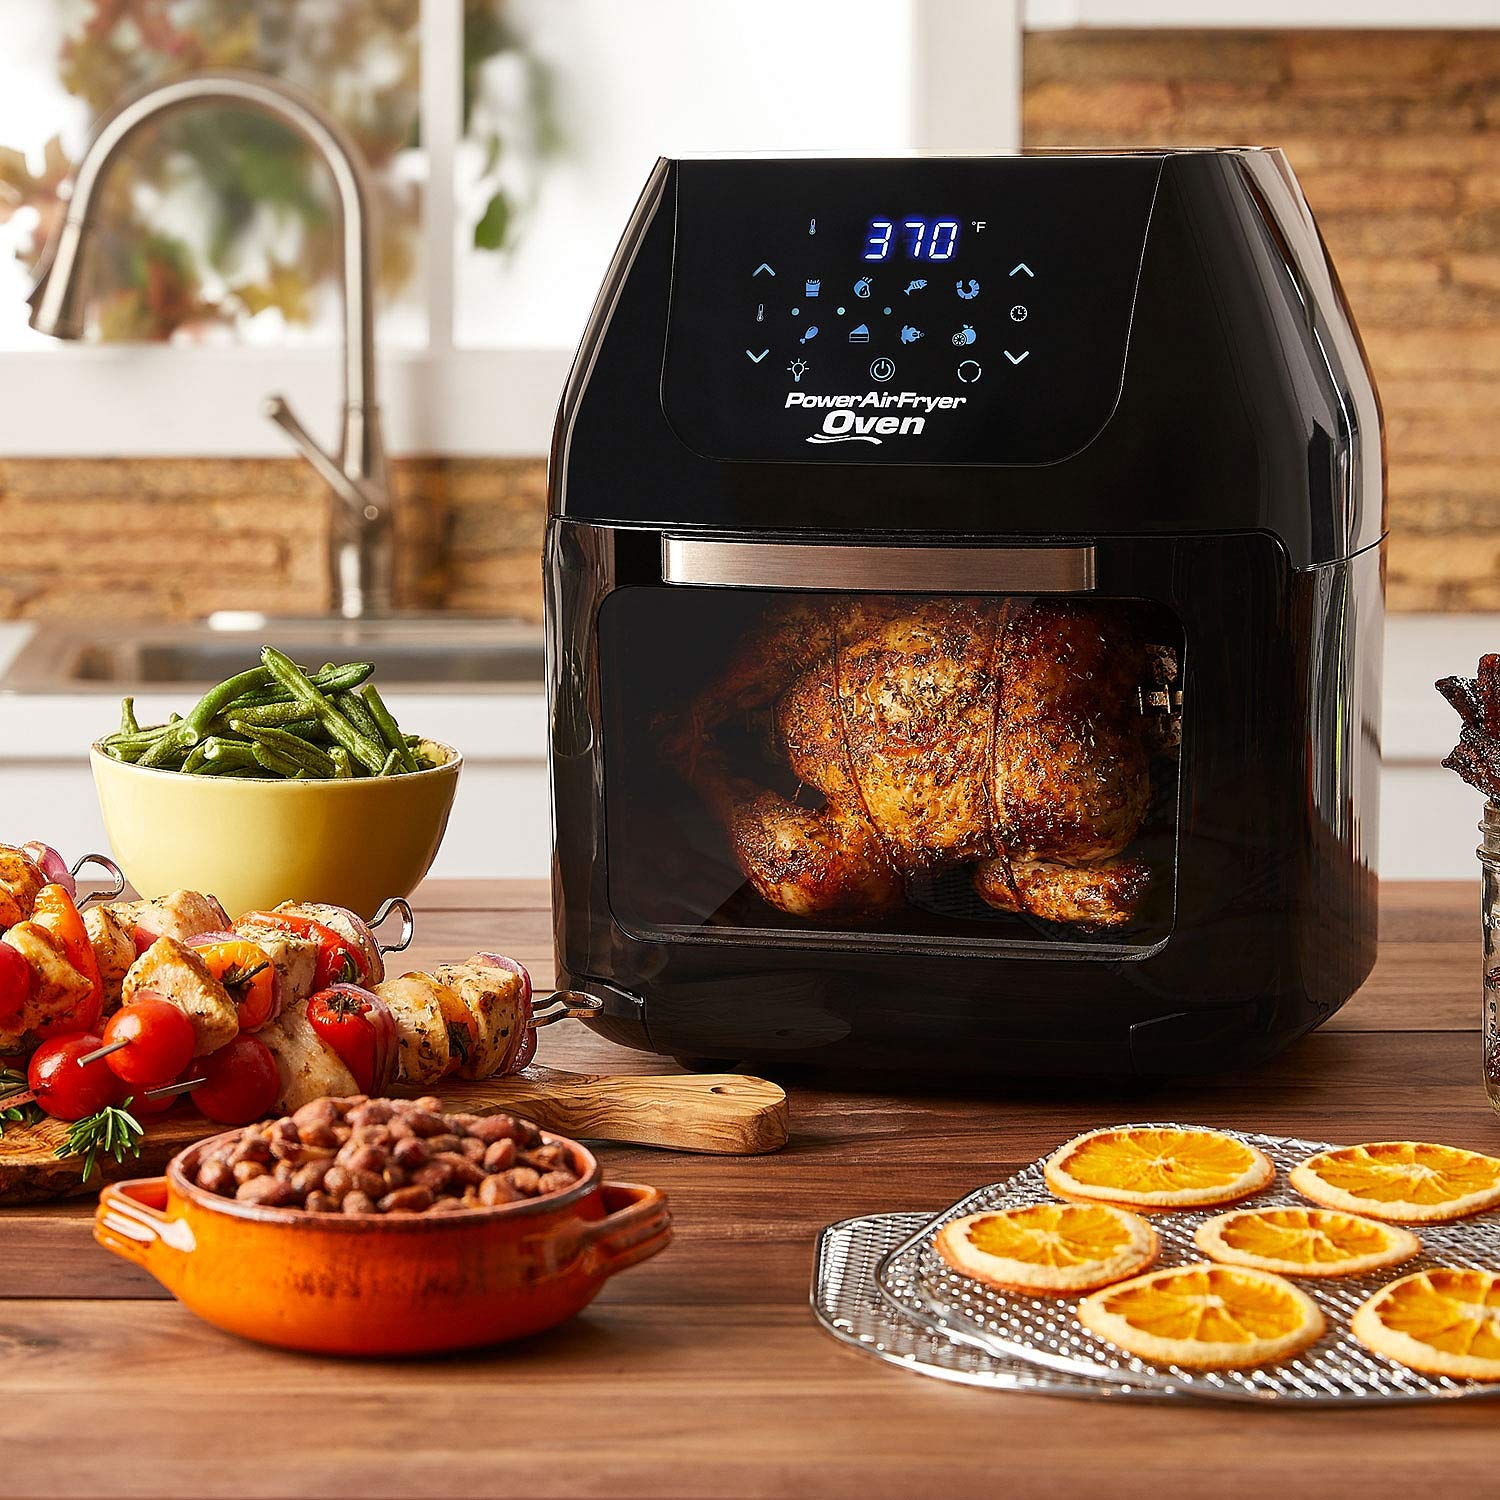 6 QT Power Air Fryer Oven With 7 in 1 Cooking Features with Professional Dehydrator and Rotisserie